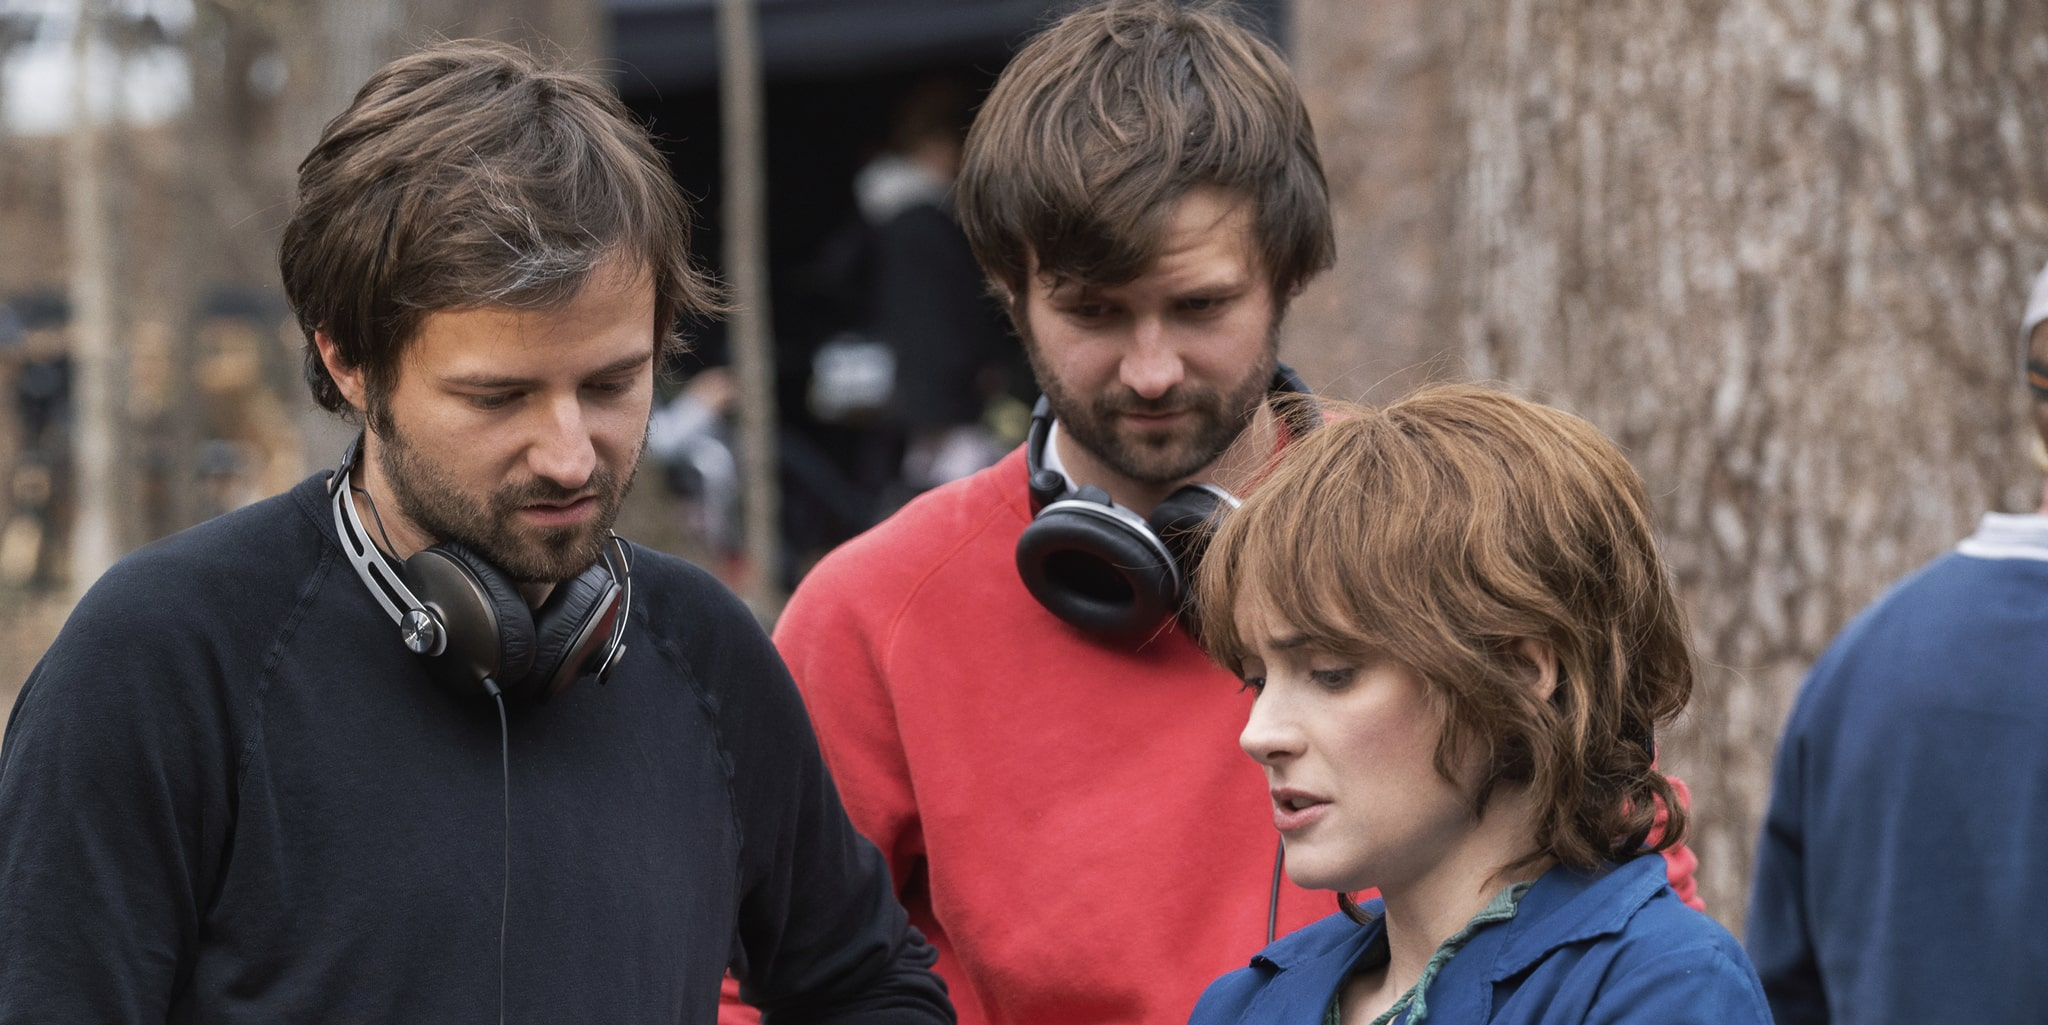 ross-and-matt-duffer-on-the-set-of-stranger-things-with-winona-ryder